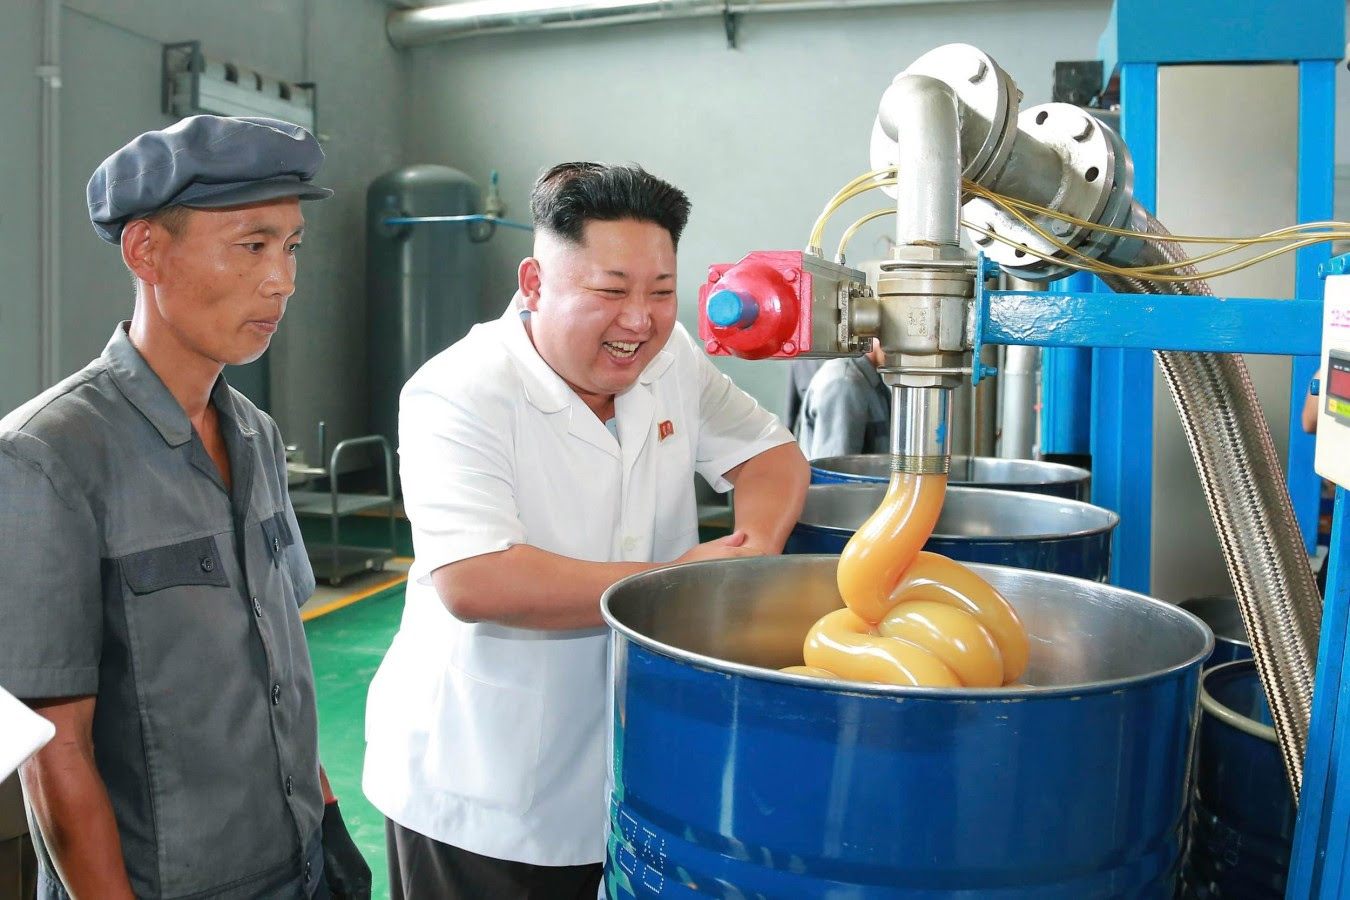 Image: KCNA picture shows North Korean leader Kim Jong Un smiling during a visit to the Chonji Lubricant Factory